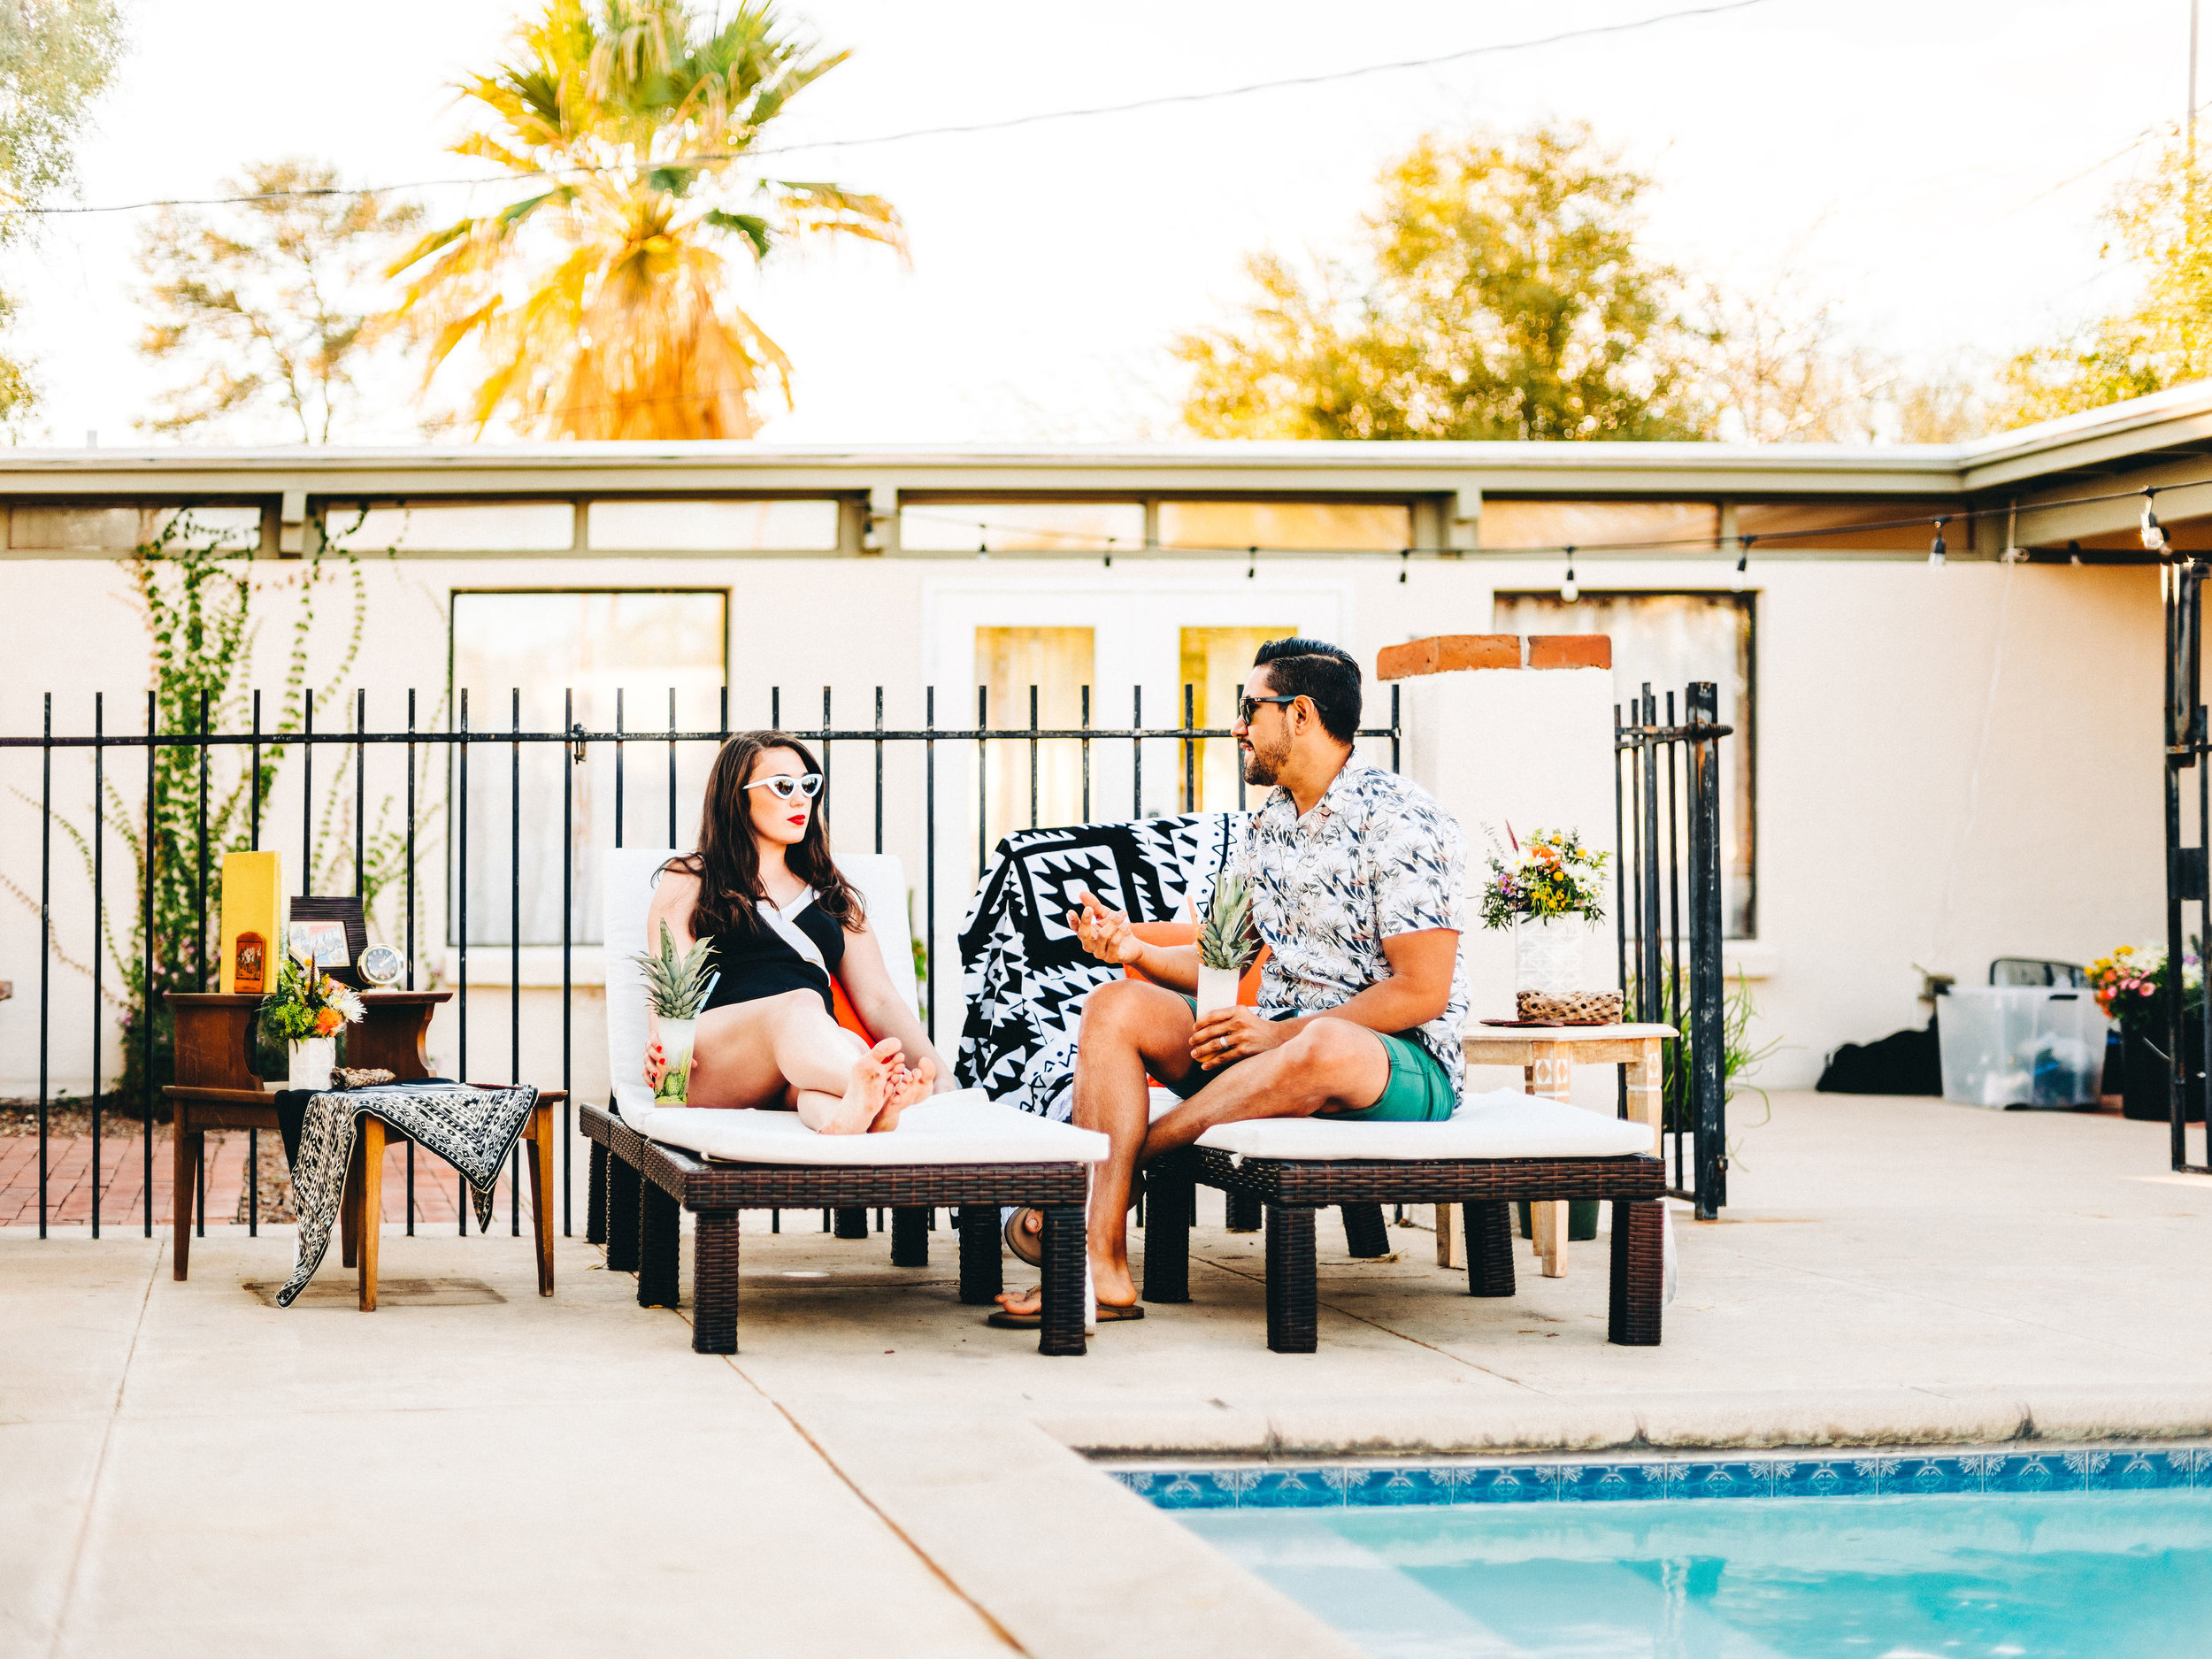 Andy-Shepard-Photography-Tucson-Pool-Party-93.jpg